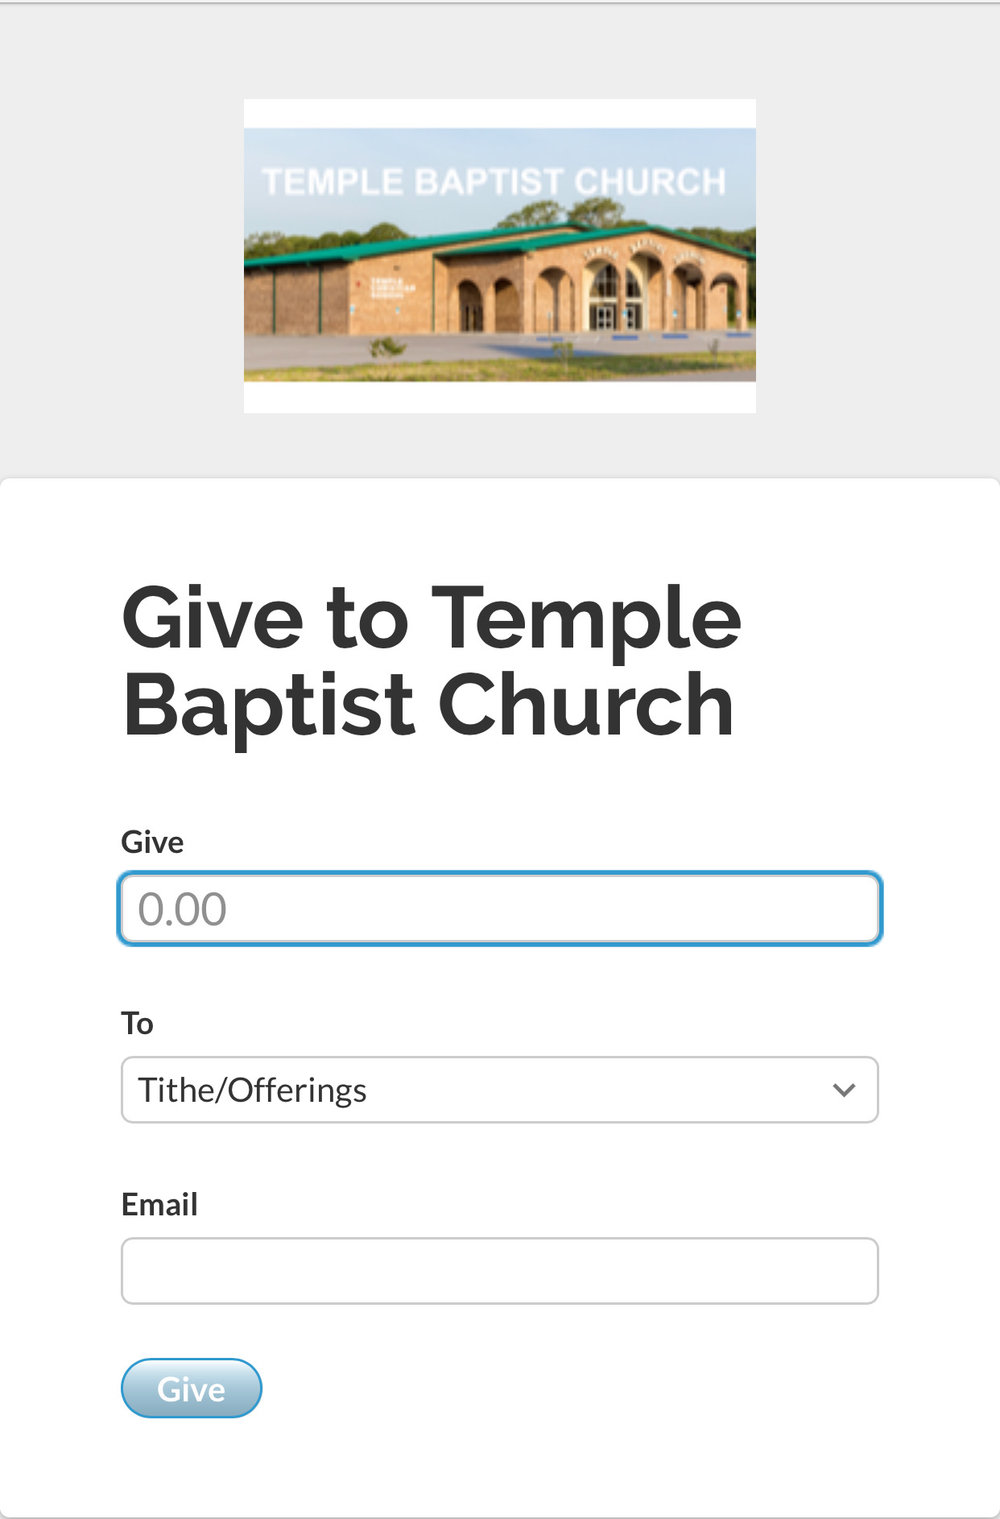 TempleBC Giving-phone-3.JPG